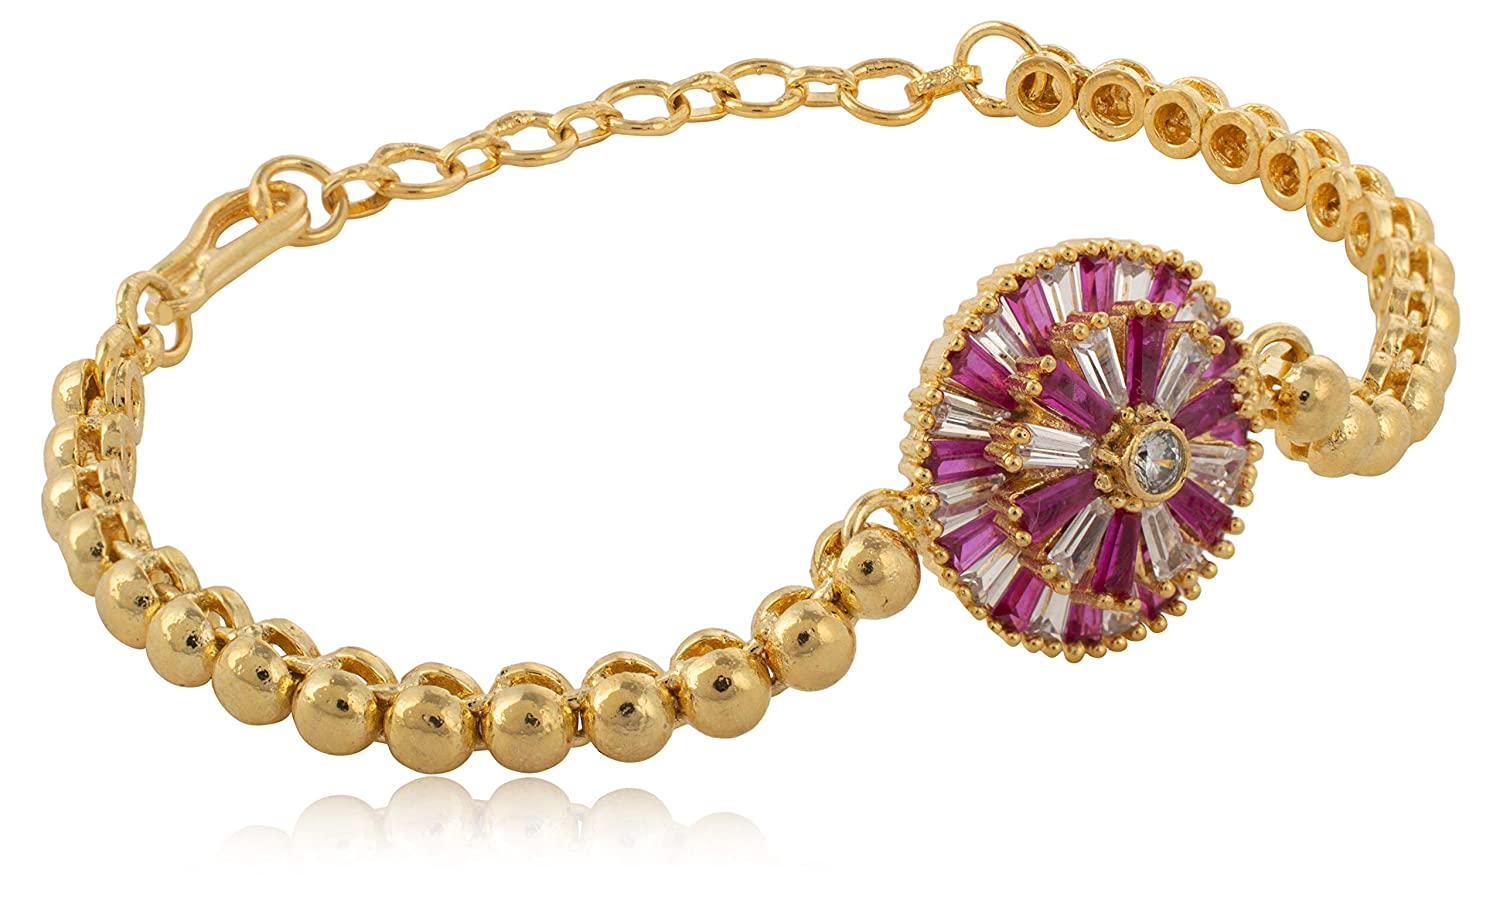 AakarShana Jewels Casual as Well as Party wear Bracelet with Attractive Craftmanship and Long Lasting Plating